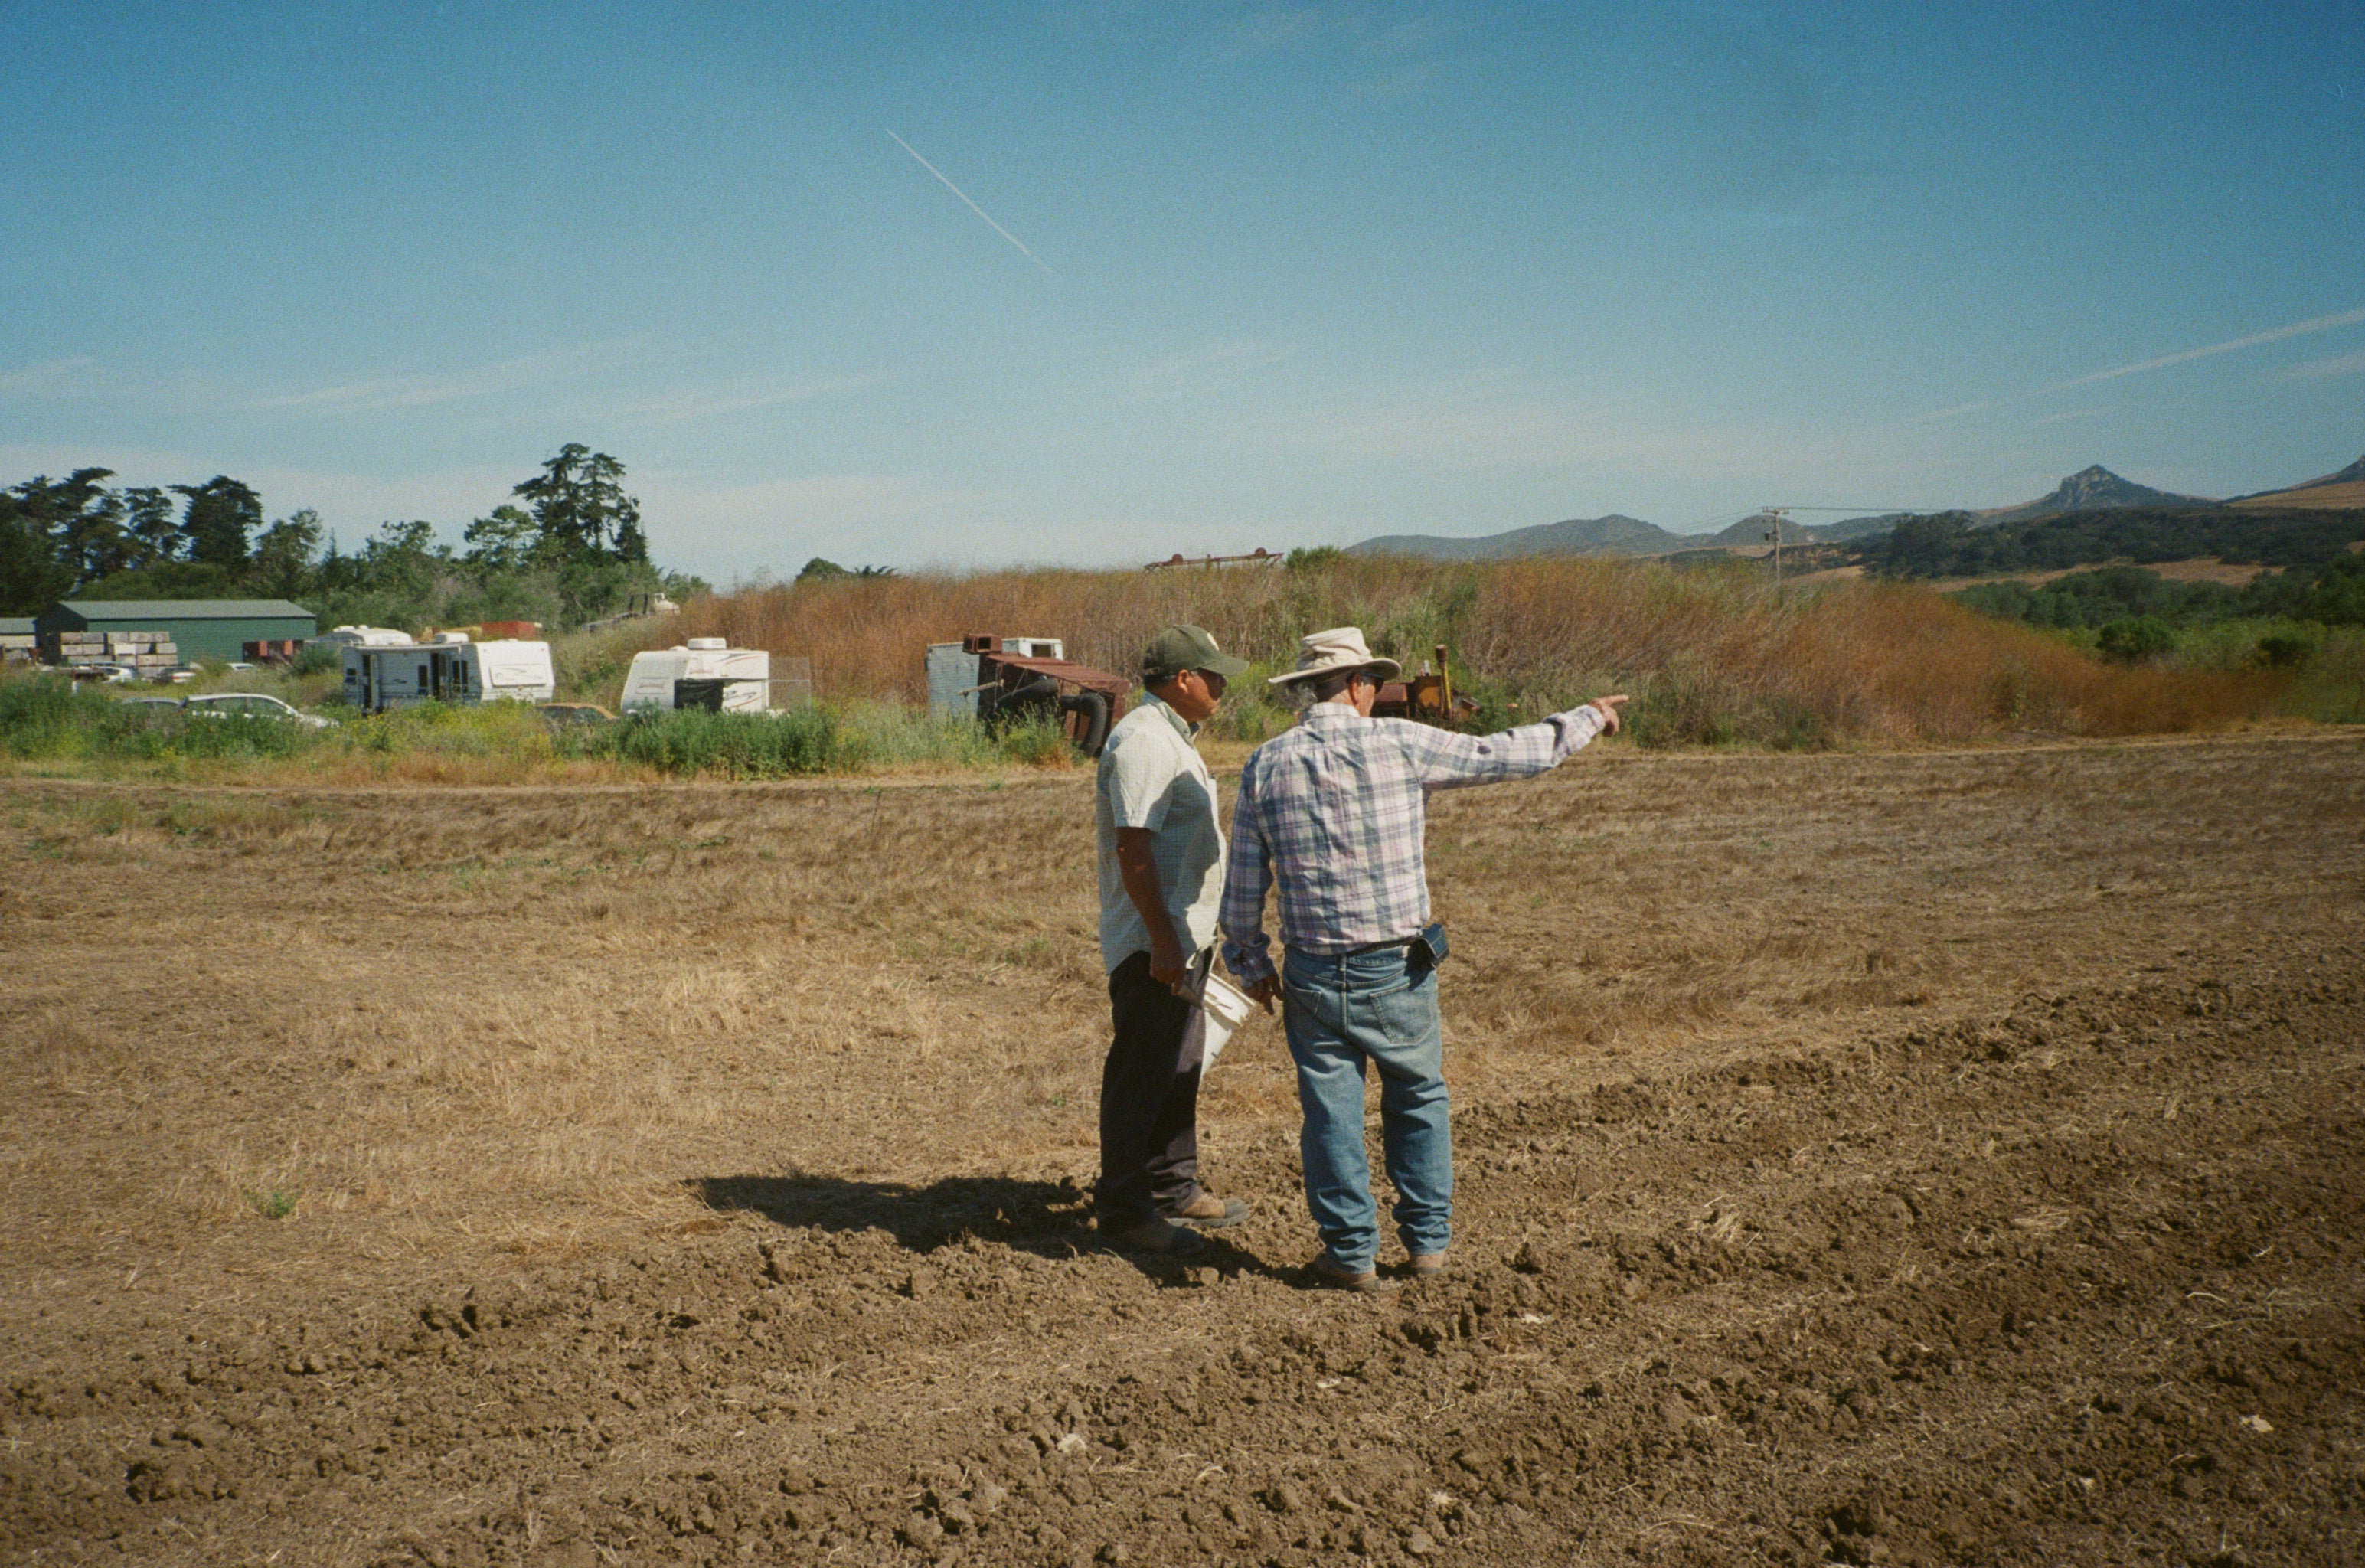 Farmers' on the field discussing plans for planting